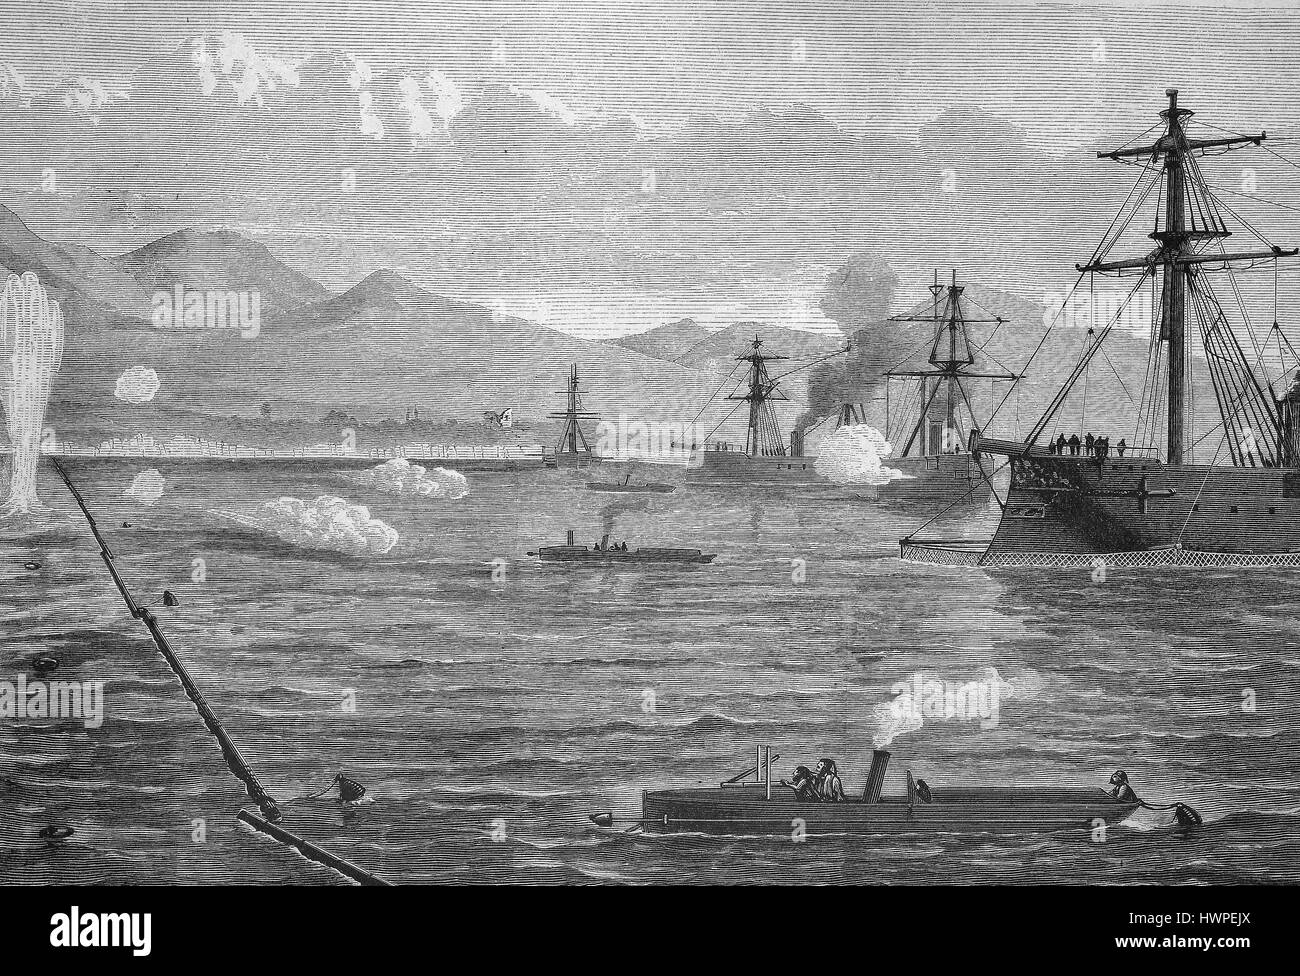 Maneuver of the Turkish fleet against the attack with torpedoes, Reproduction of an original woodcut from the year Stock Photo